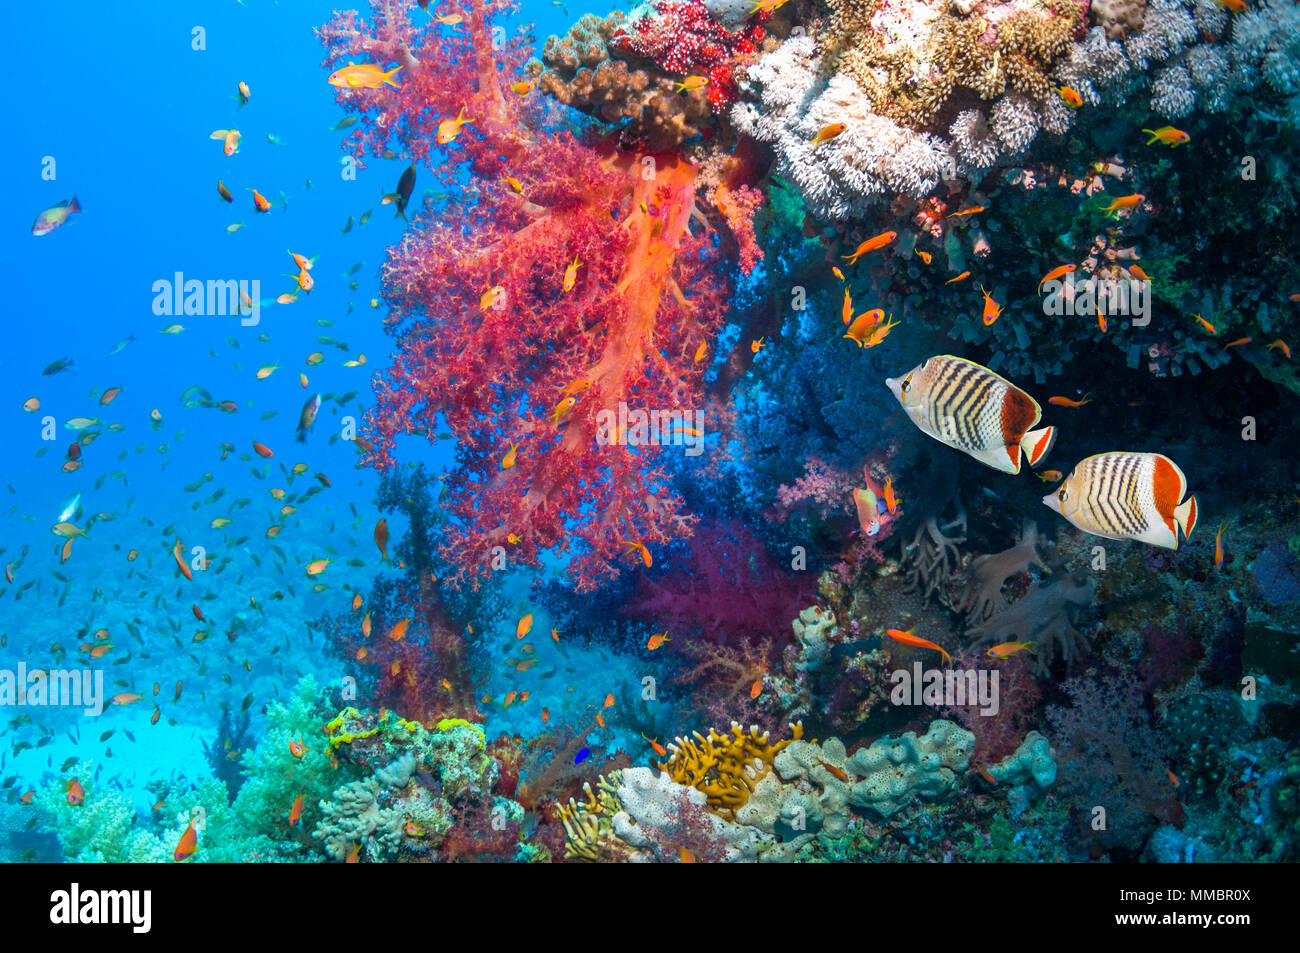 Coral reef scenery with a pair of Red Sea Eritrean or Crown butterfish [Chaetodon paucifasciatus], Lyretail anthias or Goldies [Pseudanthias squamipin - Stock Image